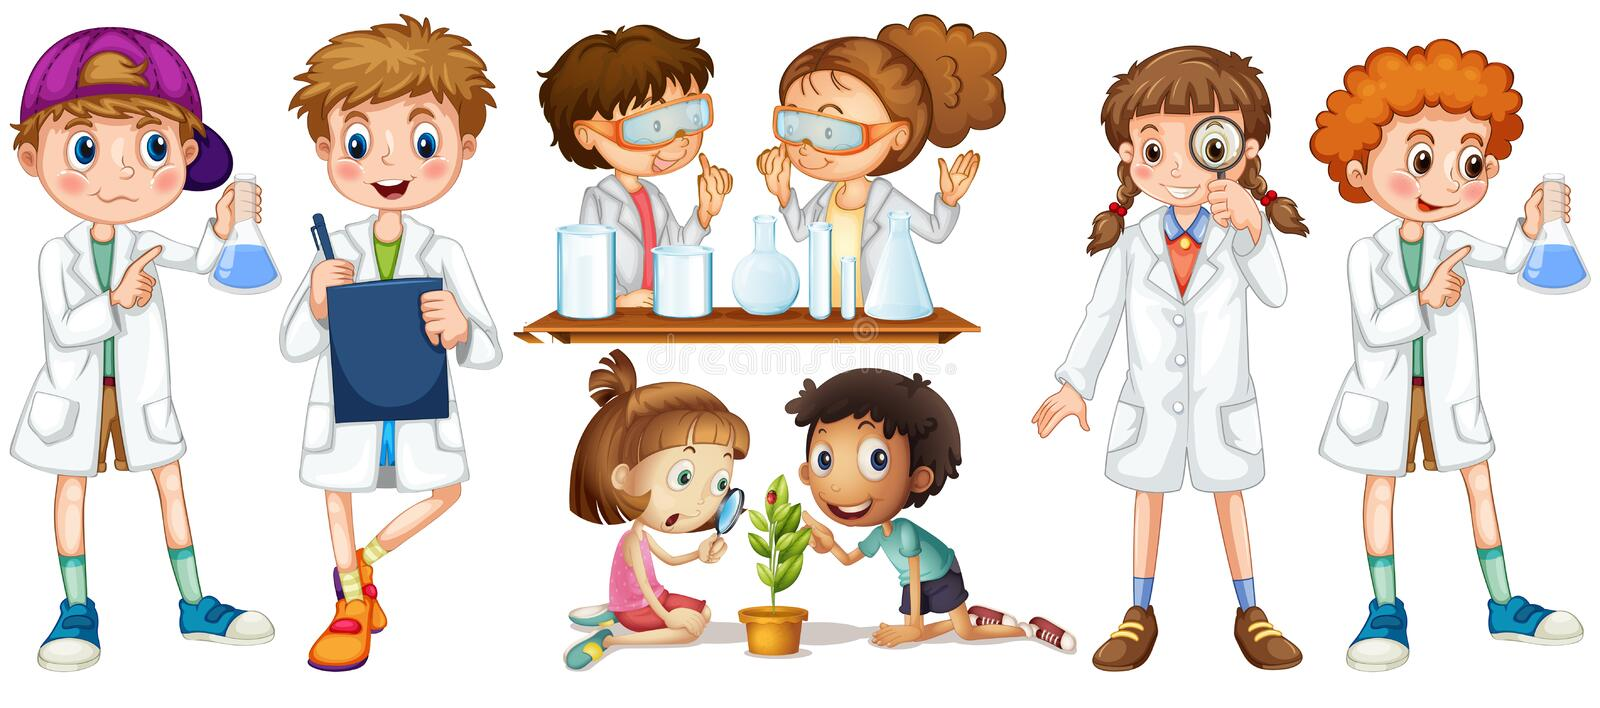 Boys and girls in science gown stock illustration